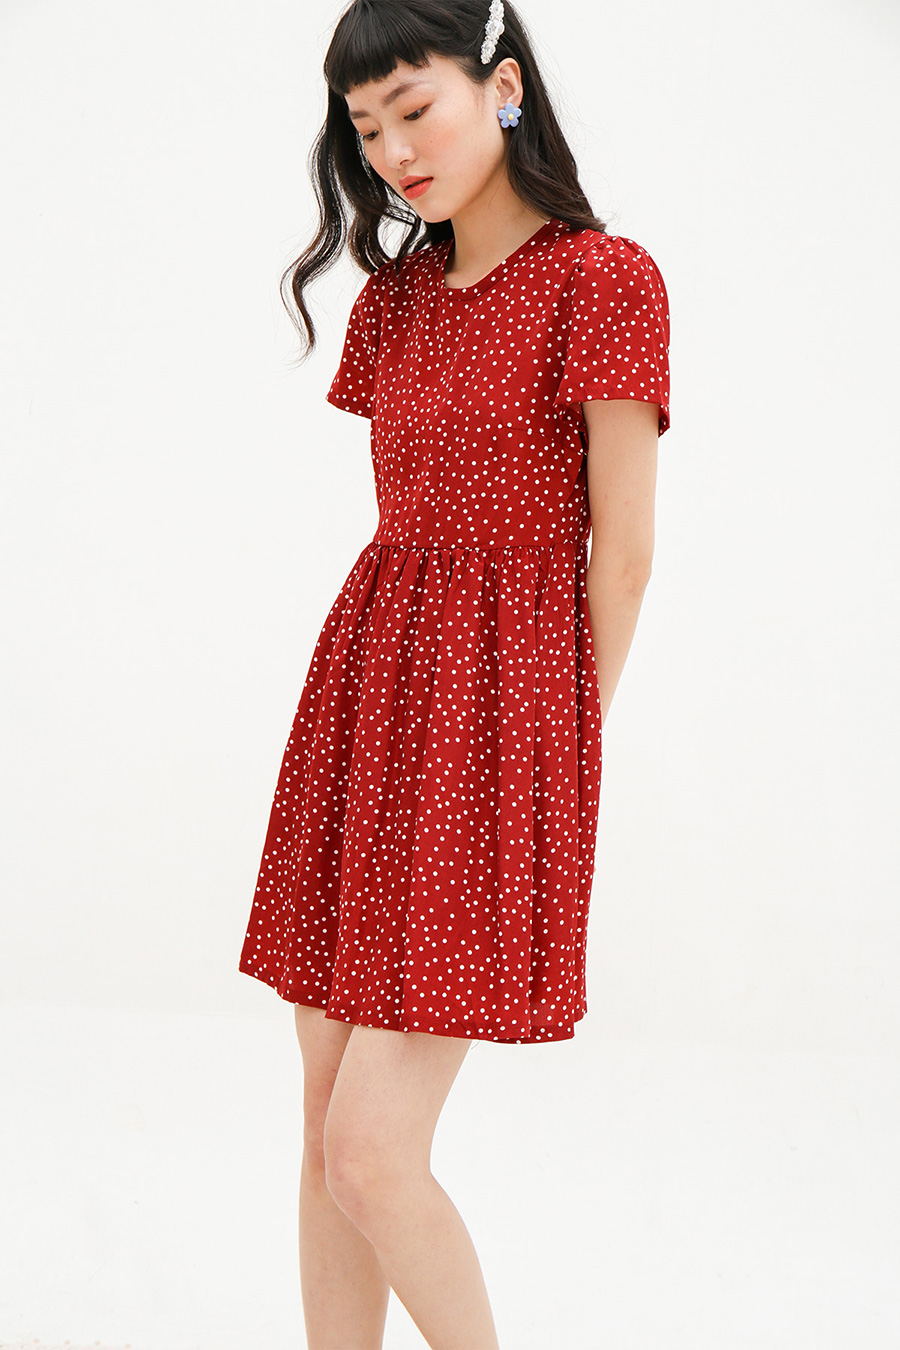 AURIANE DRESS - PLUM DOTTY